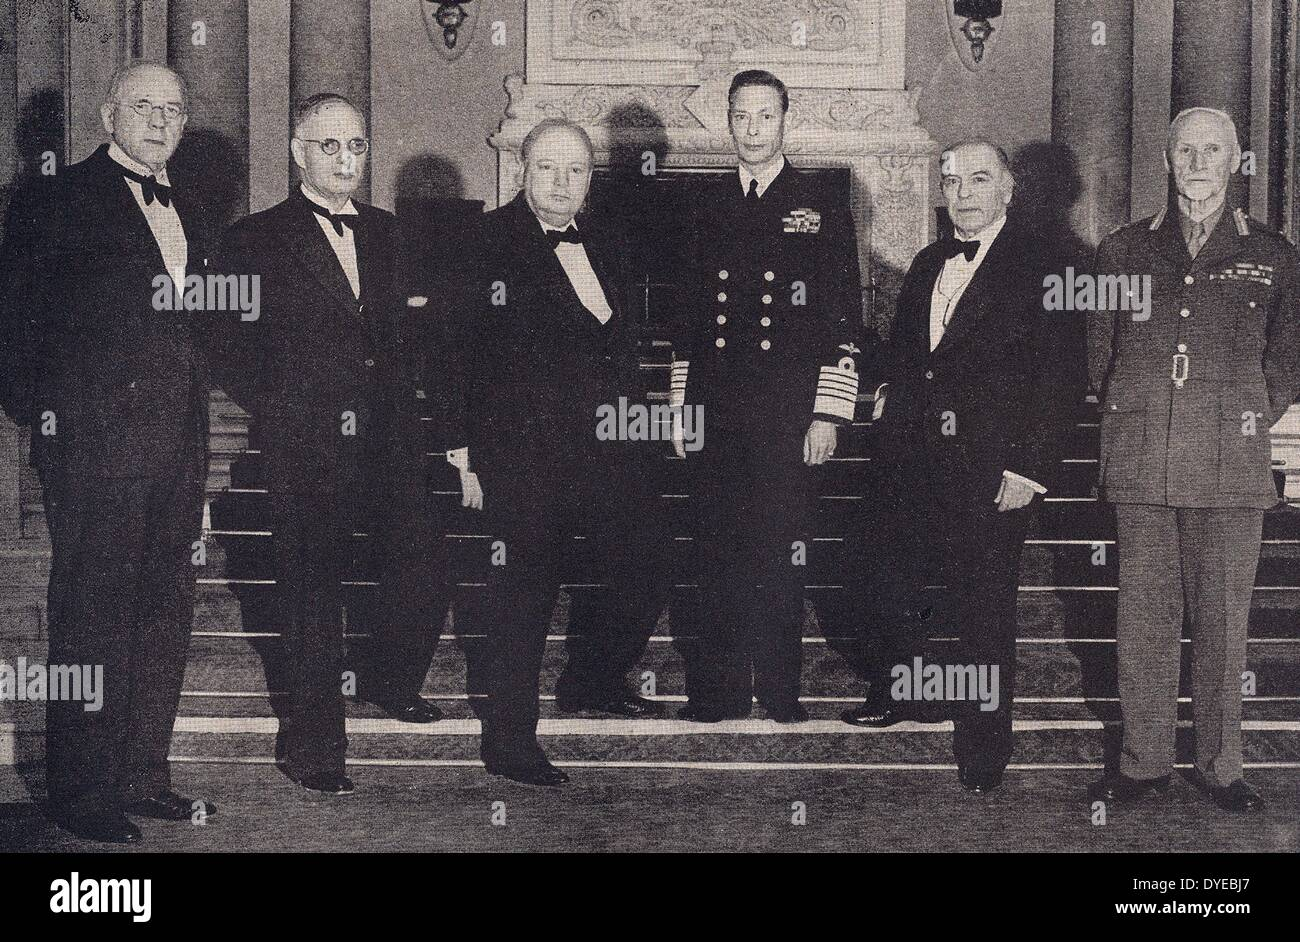 King George VI with British Prime Minister Winston Churchill and General Smuts of South Africa. London 1940 - Stock Image